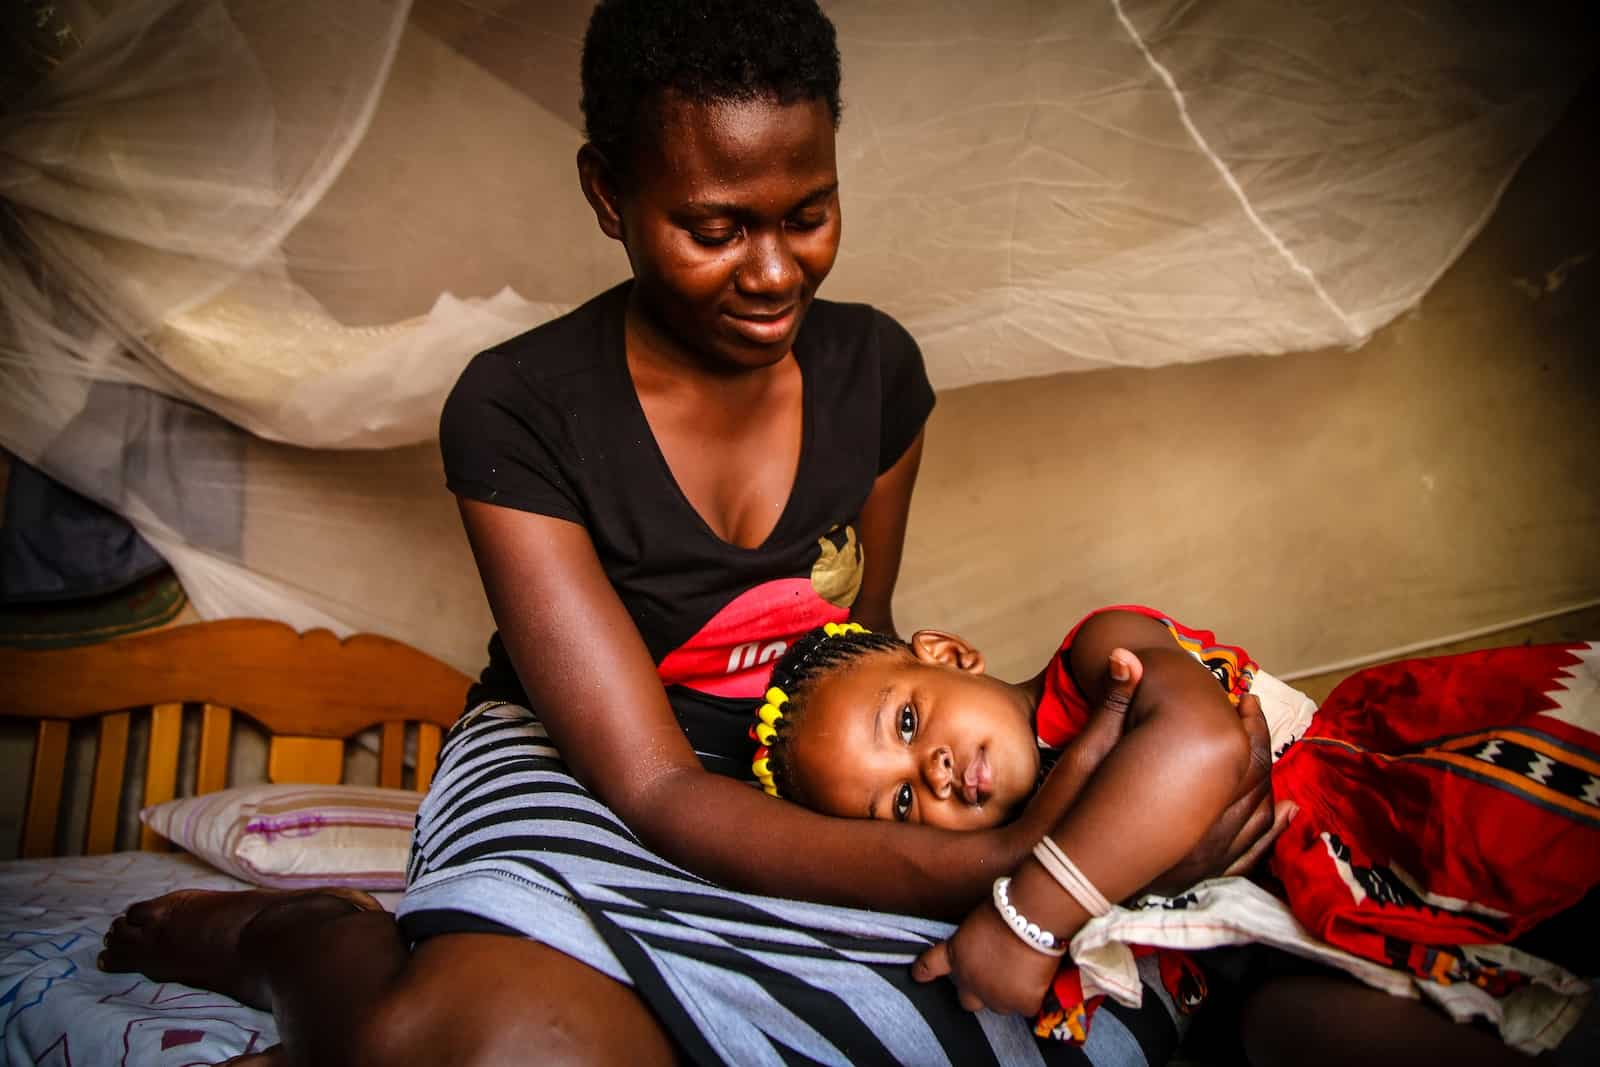 A girl wearing a red and white dress lays on her mother's lap. The mom wears a black shirt and black and white striped dress. They sit on a bed with a mosquito net on it.